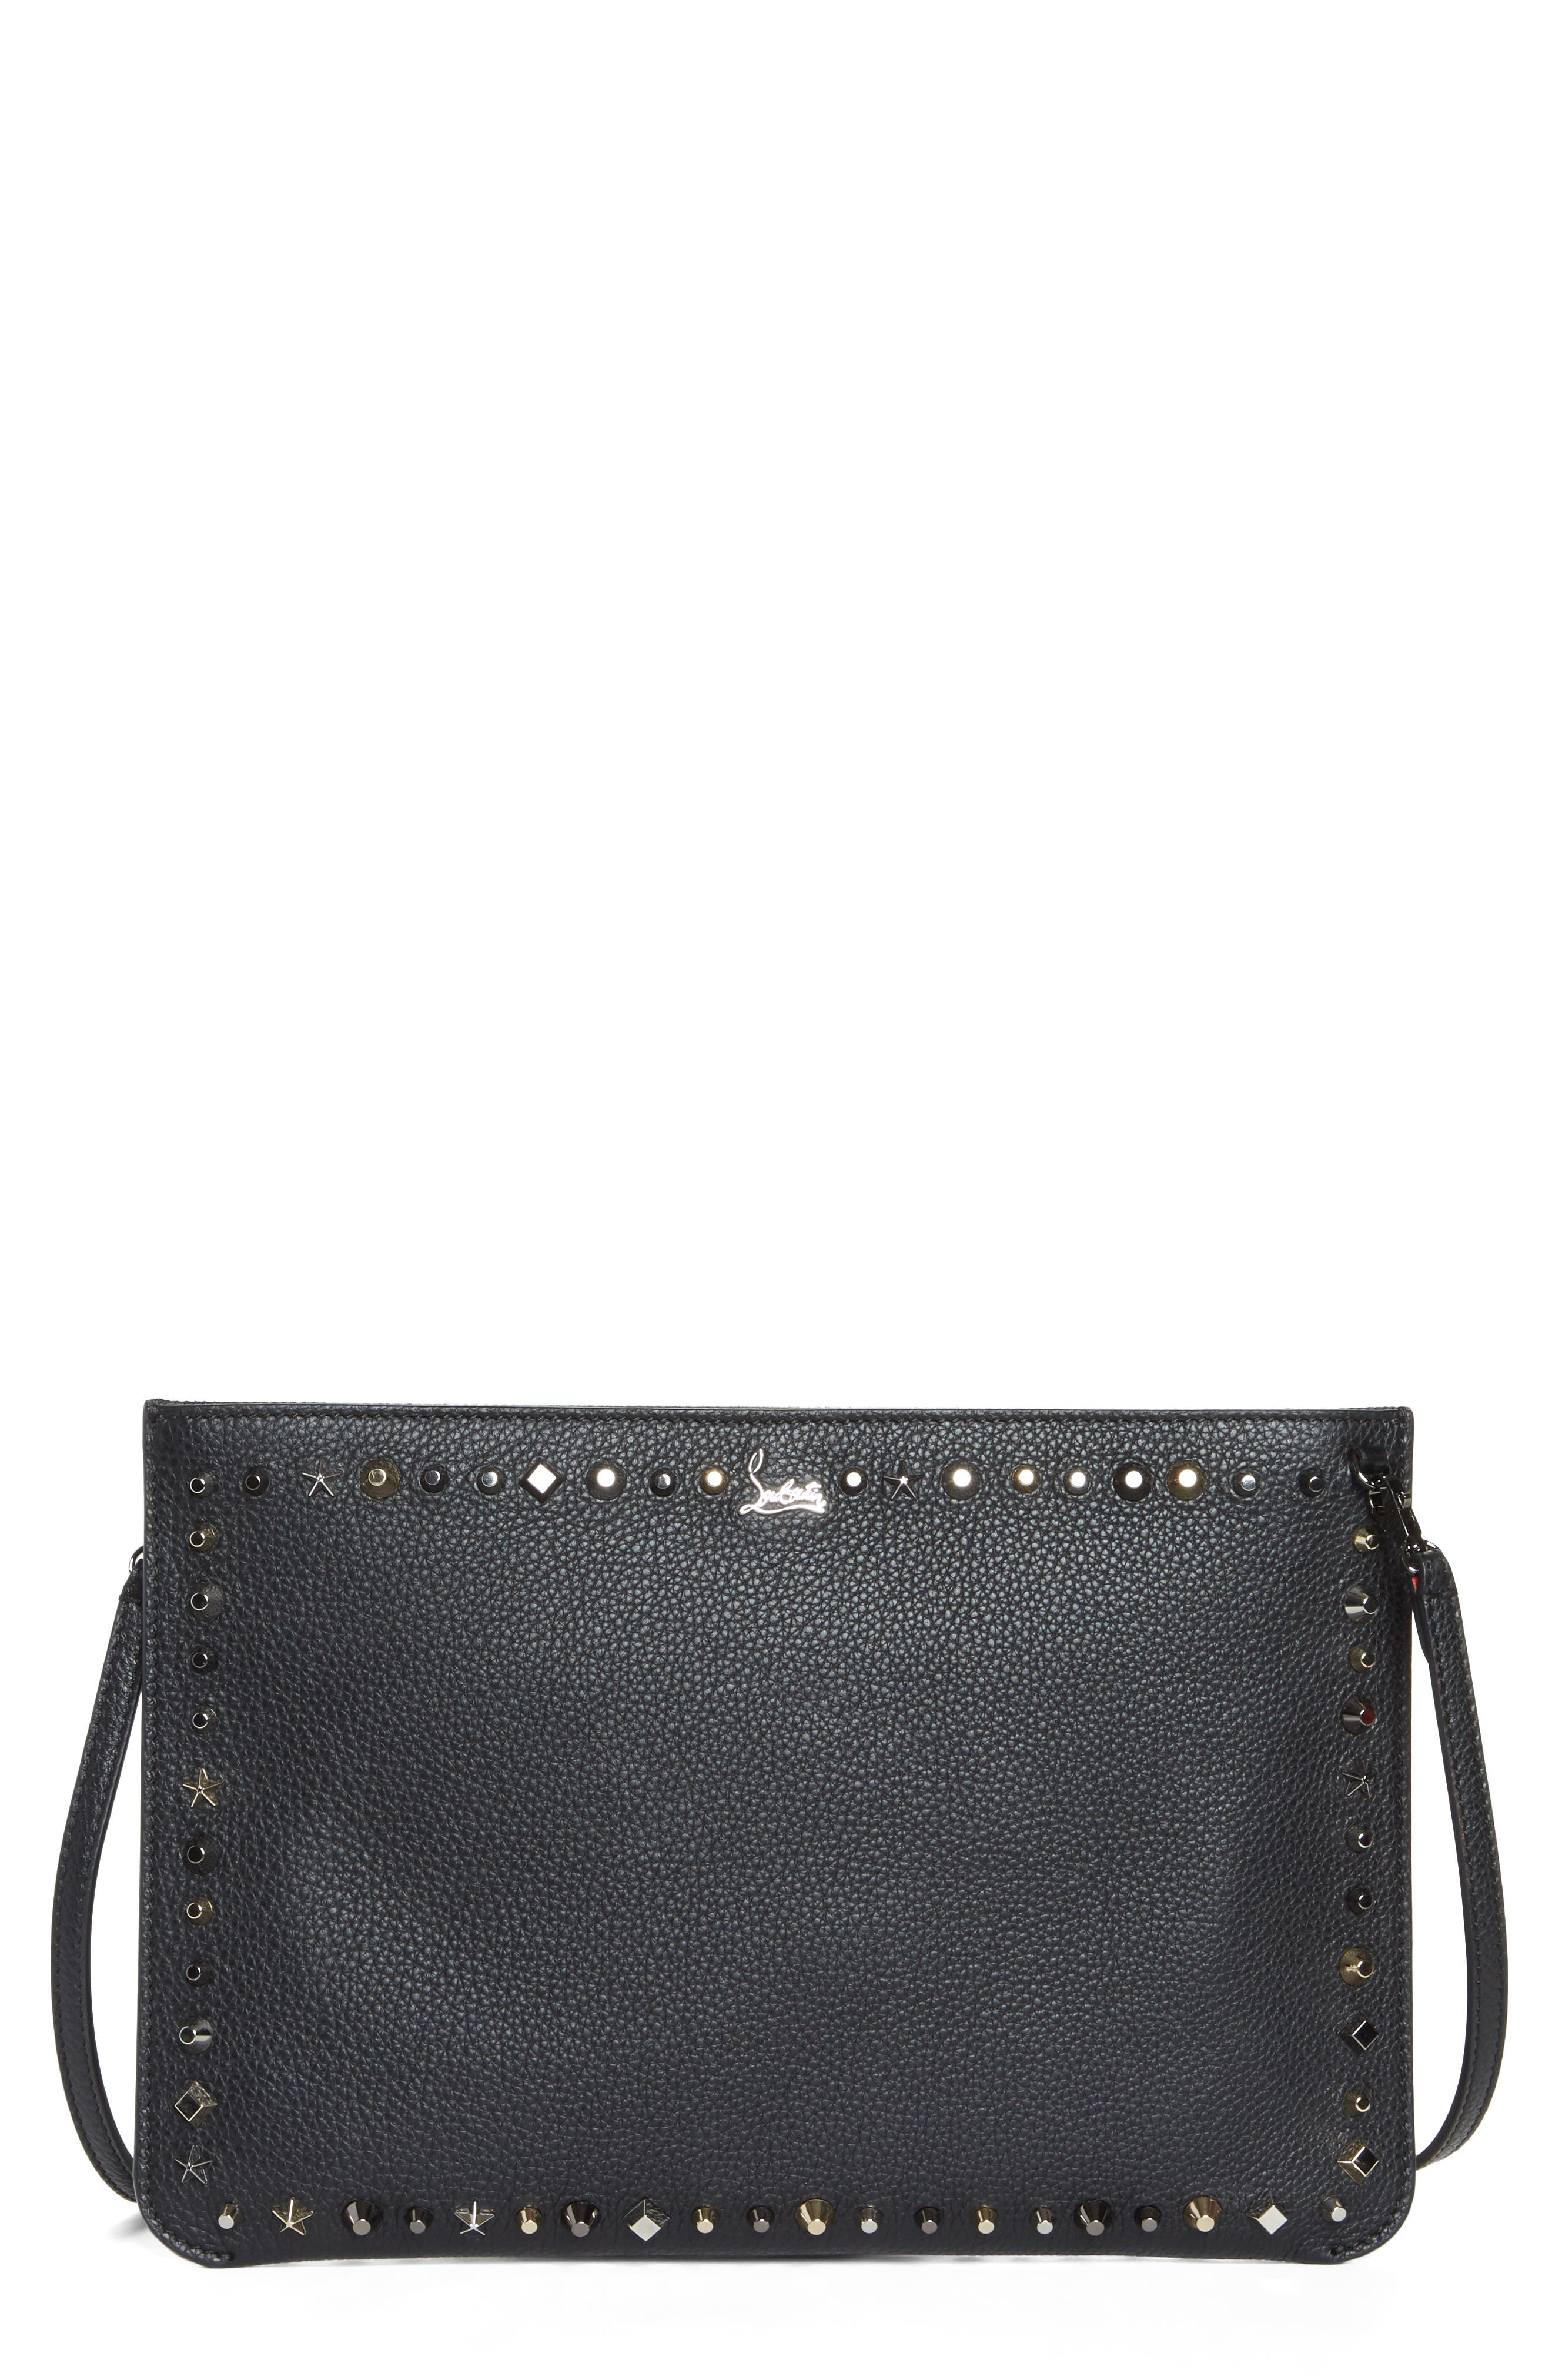 Loubiclutch Spiked Leather Clutch,                         Main,                         color, BLACK/ MULTIMETAL